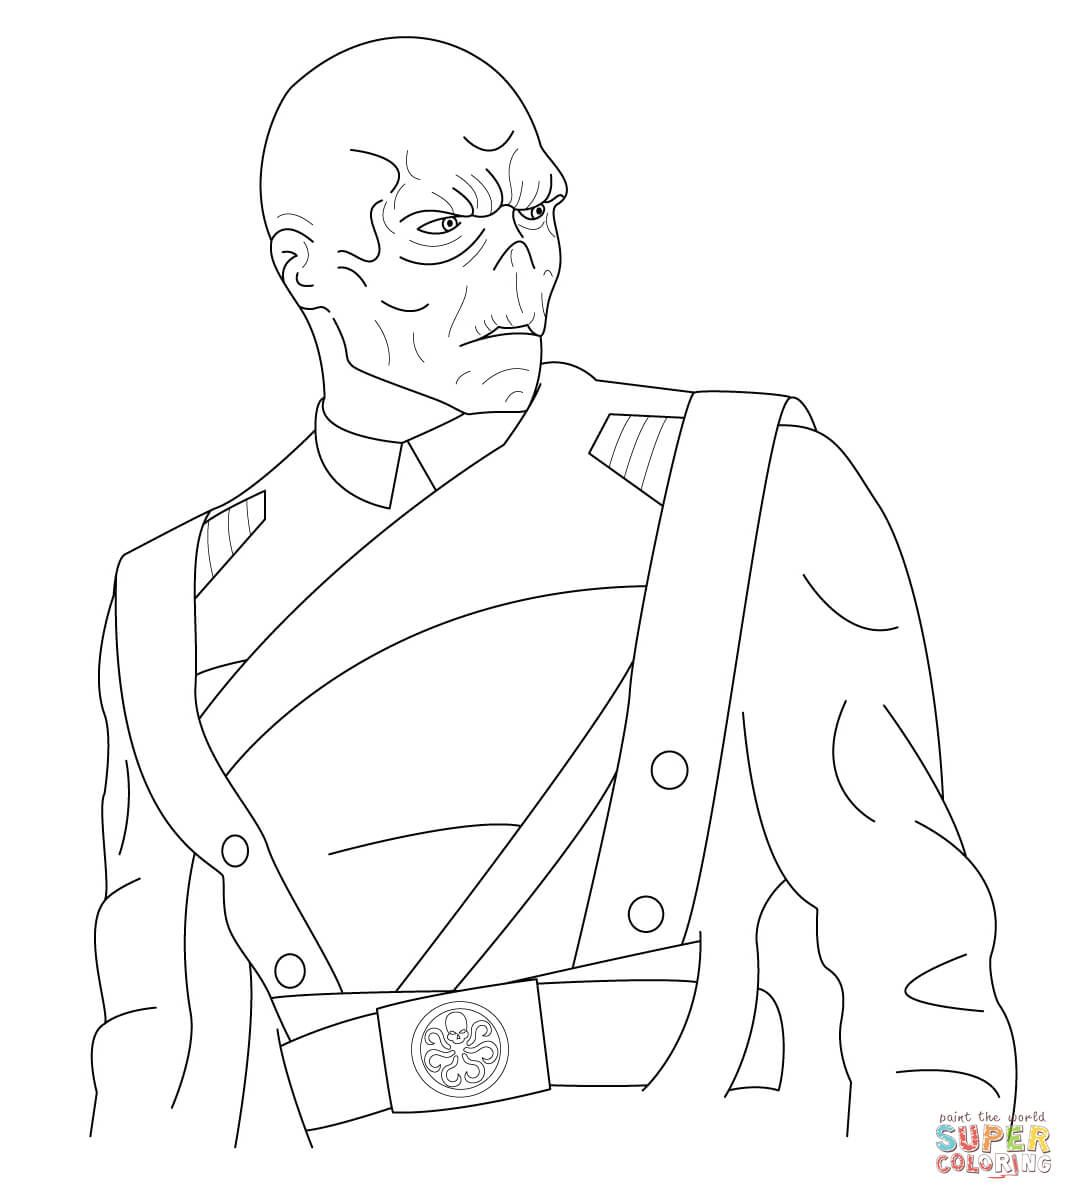 Red Skull Marvel Coloring Pages Red Skull Marvel Skull Coloring Pages Marvel Coloring